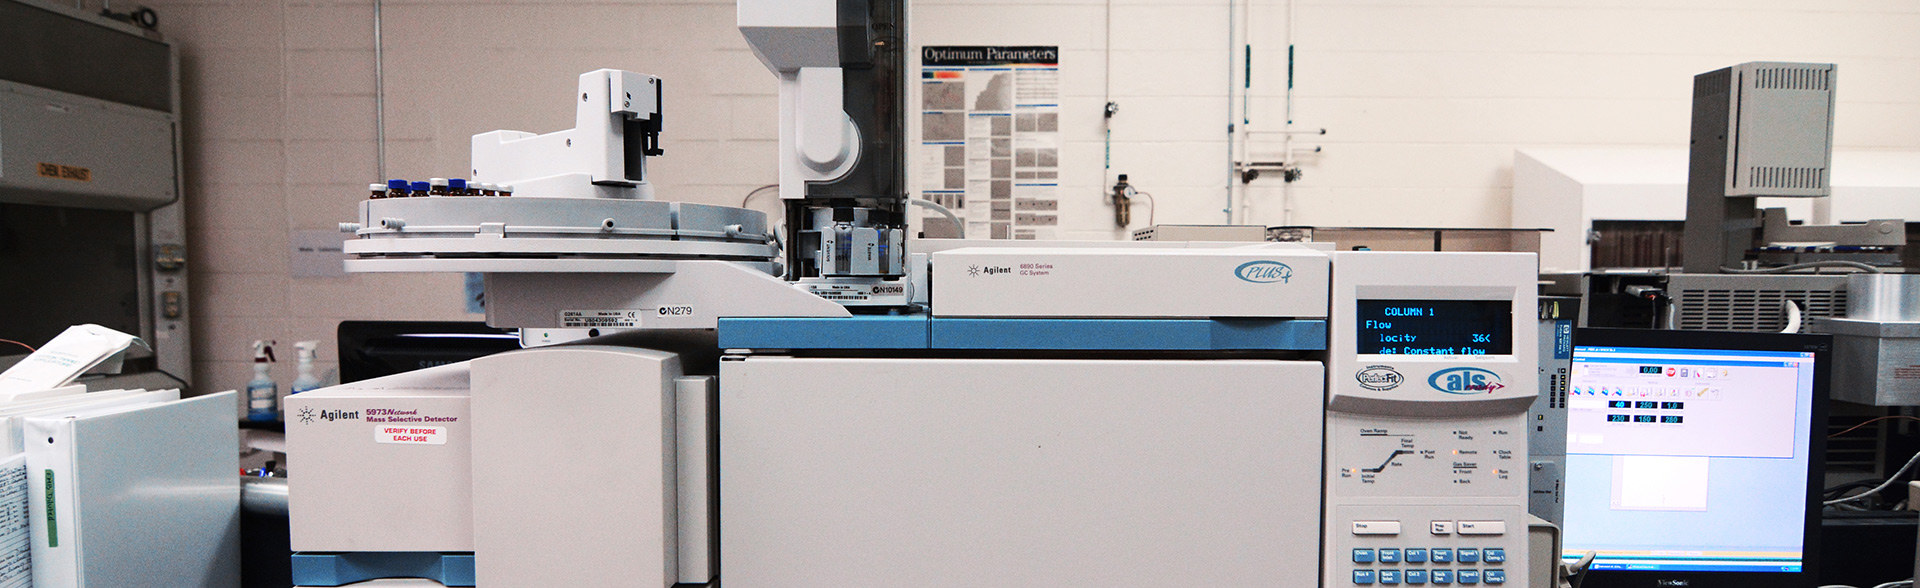 GC-MS for the analysis of organic materials